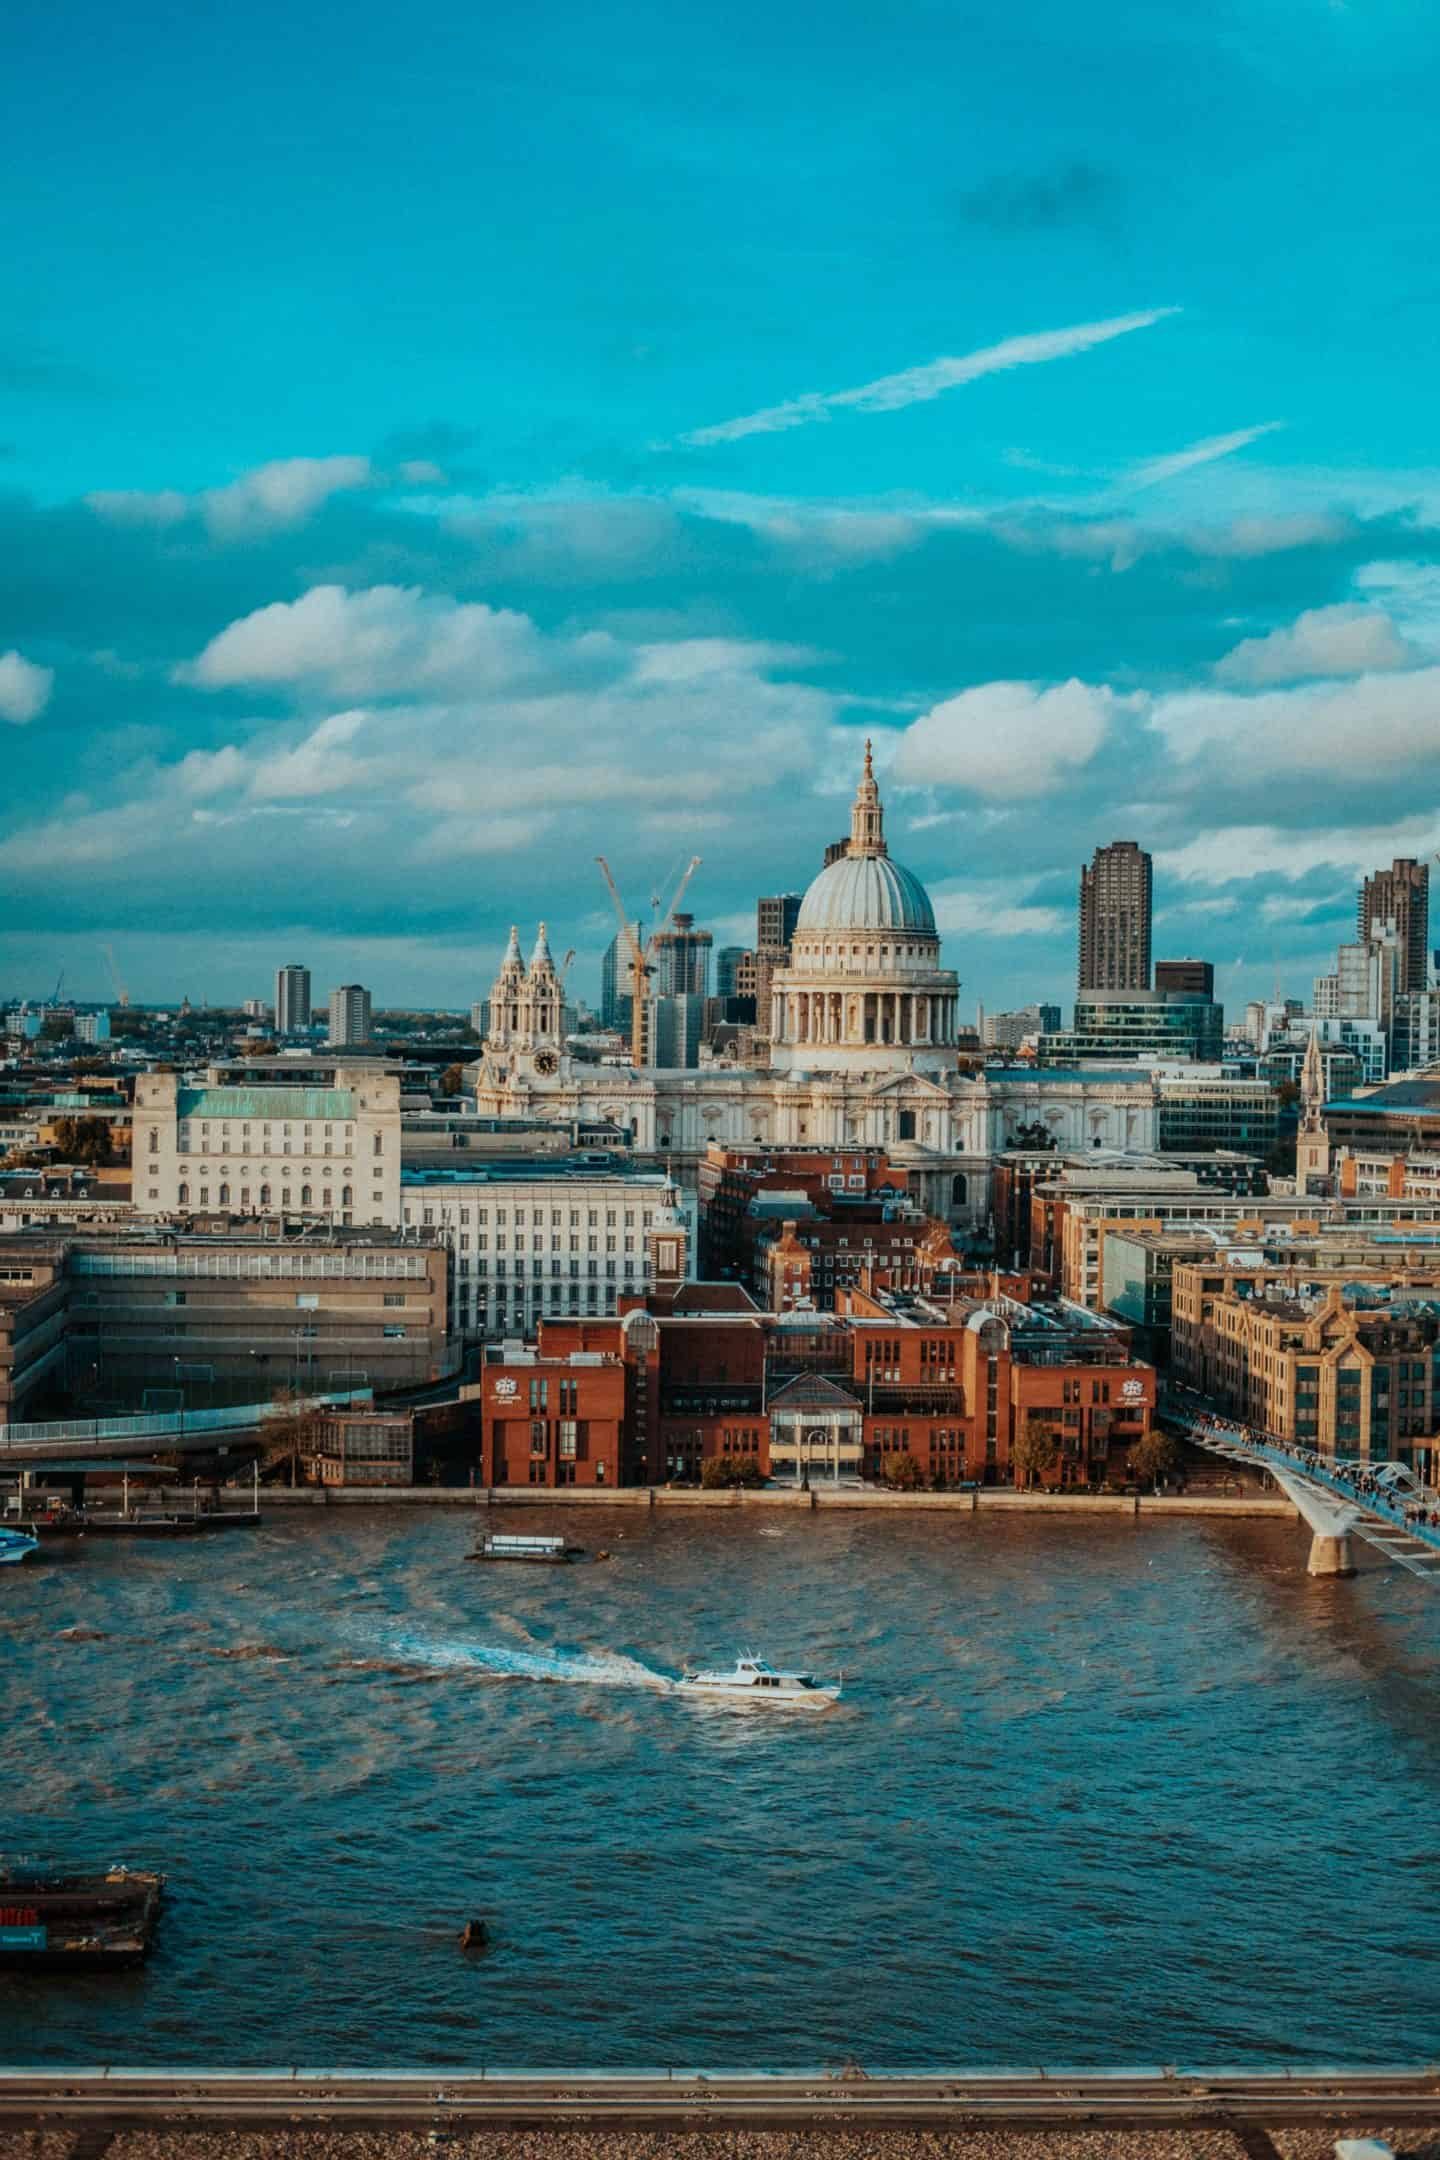 London, Best Cities for Black Women to Live